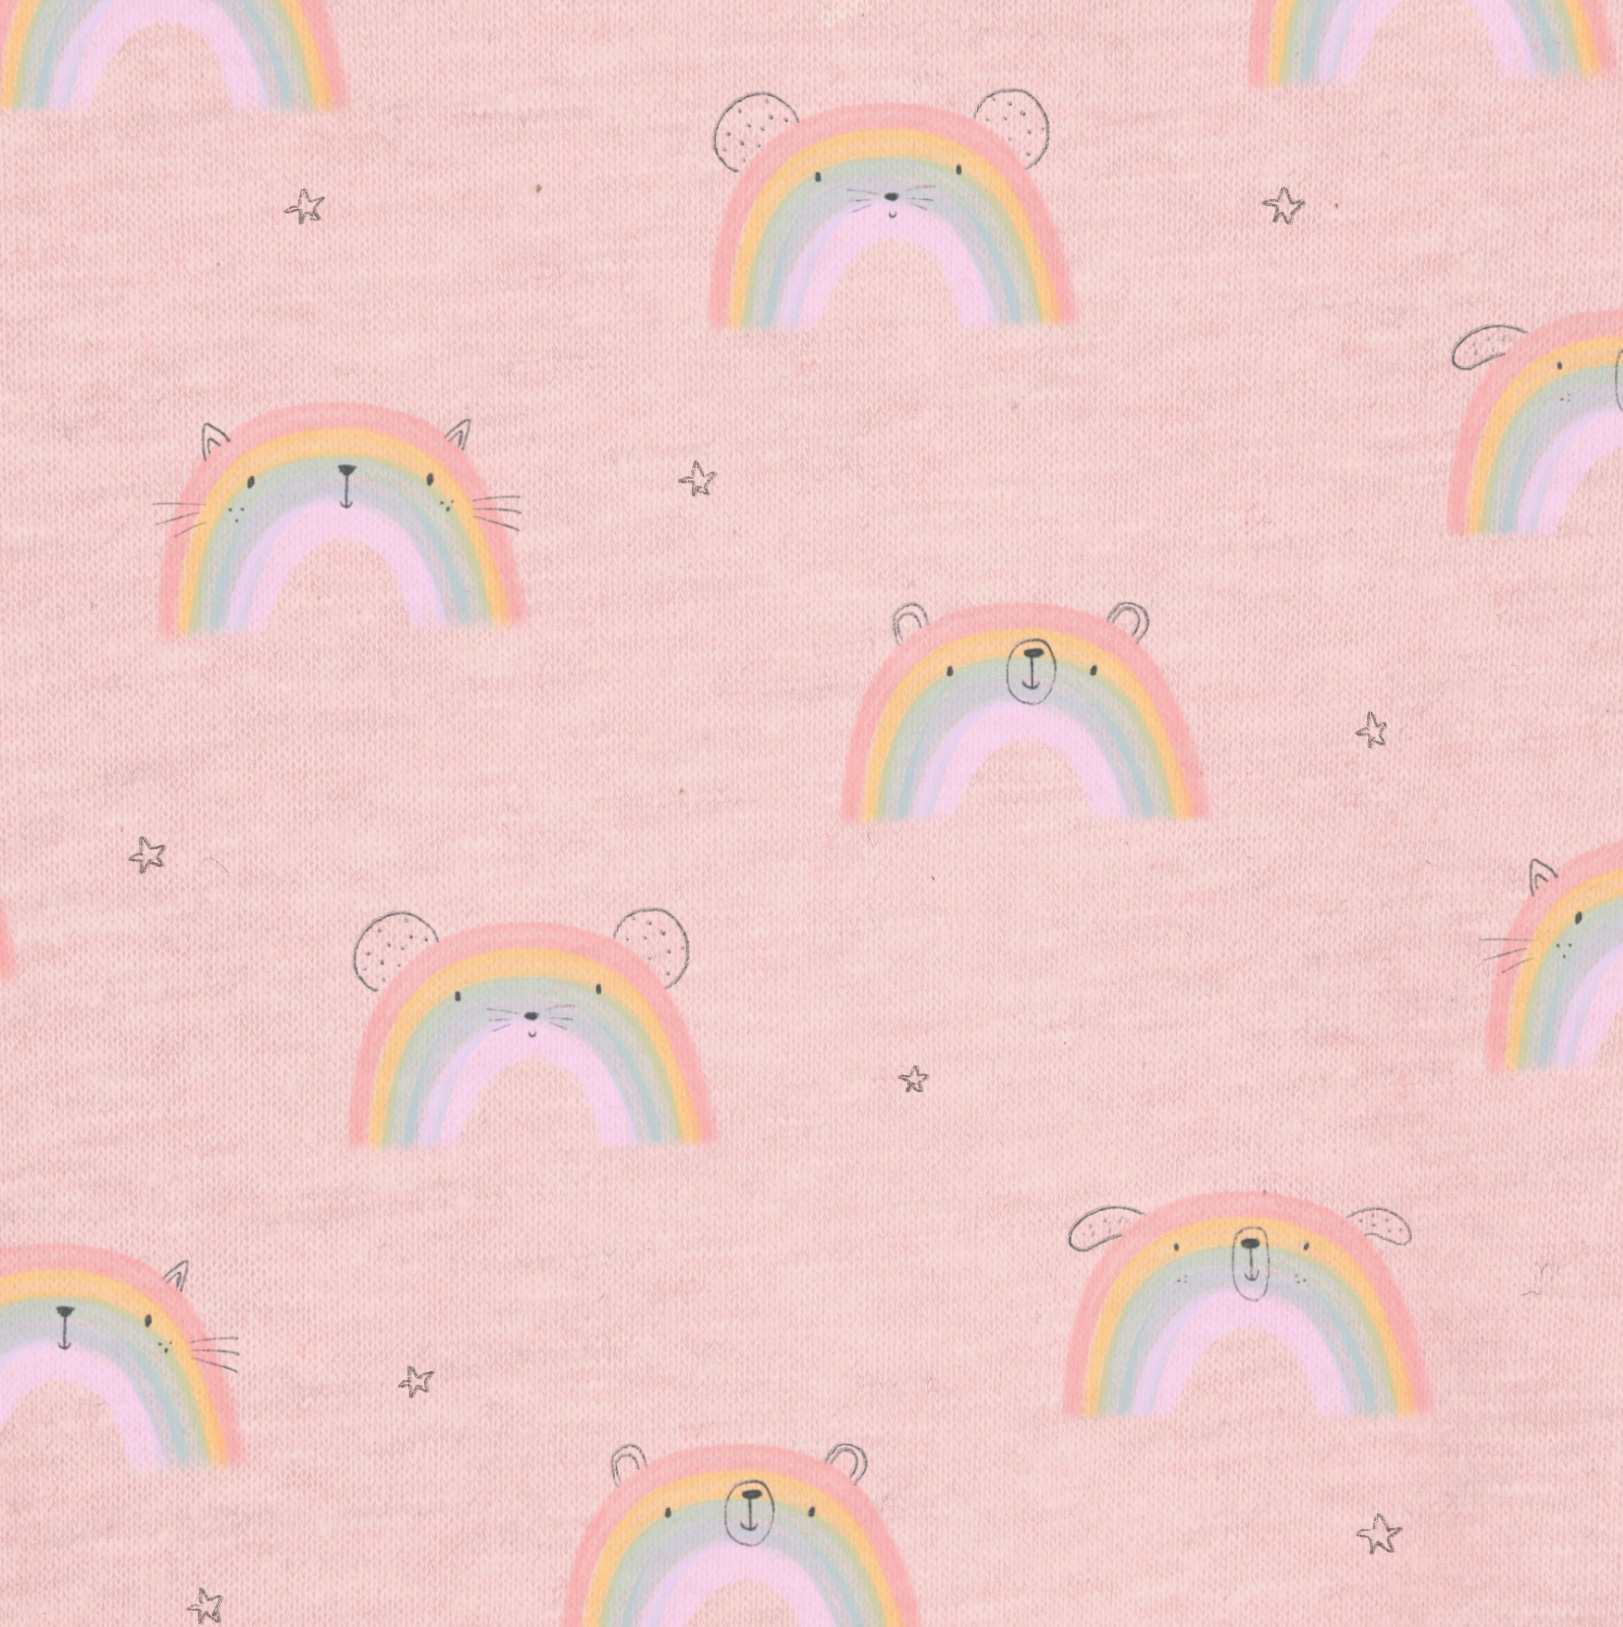 A new little rainbow print, I think this would look so cute on some pyjamas! If you like what you see, this pattern is available for licensing. Drop me an email at bethillustrates@gmail.com and let's chat!